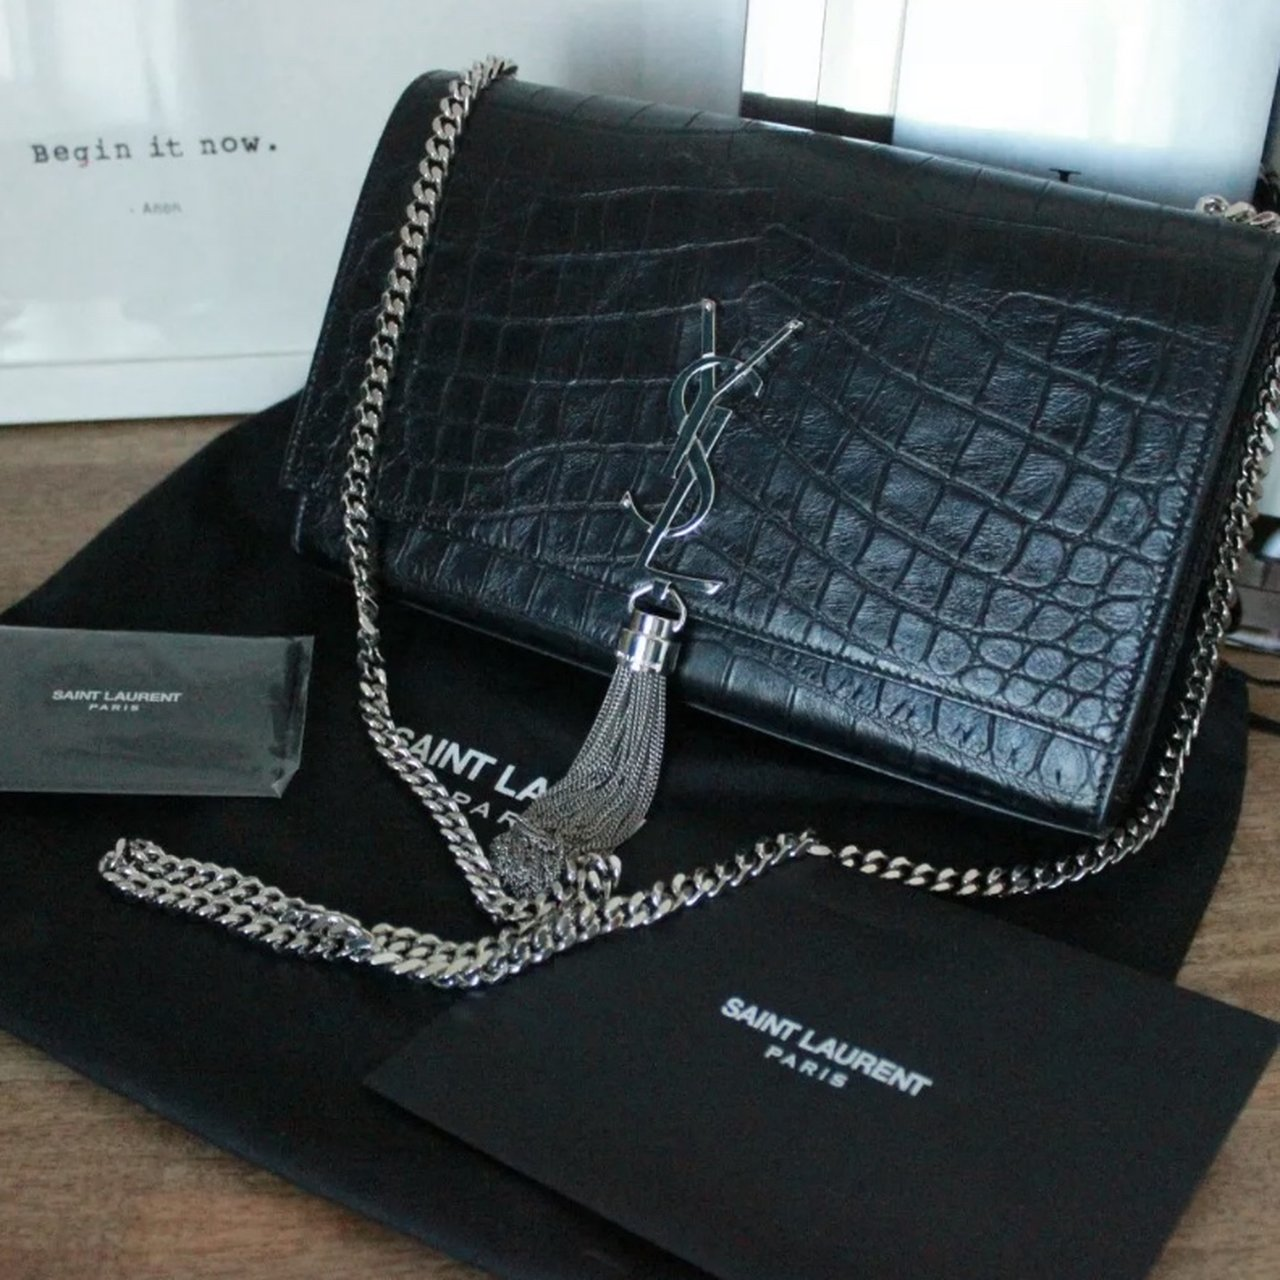 0f92ede54524 YSL Saint Laurent Kate Medium Bag In Crocodile Shiny Black - Depop